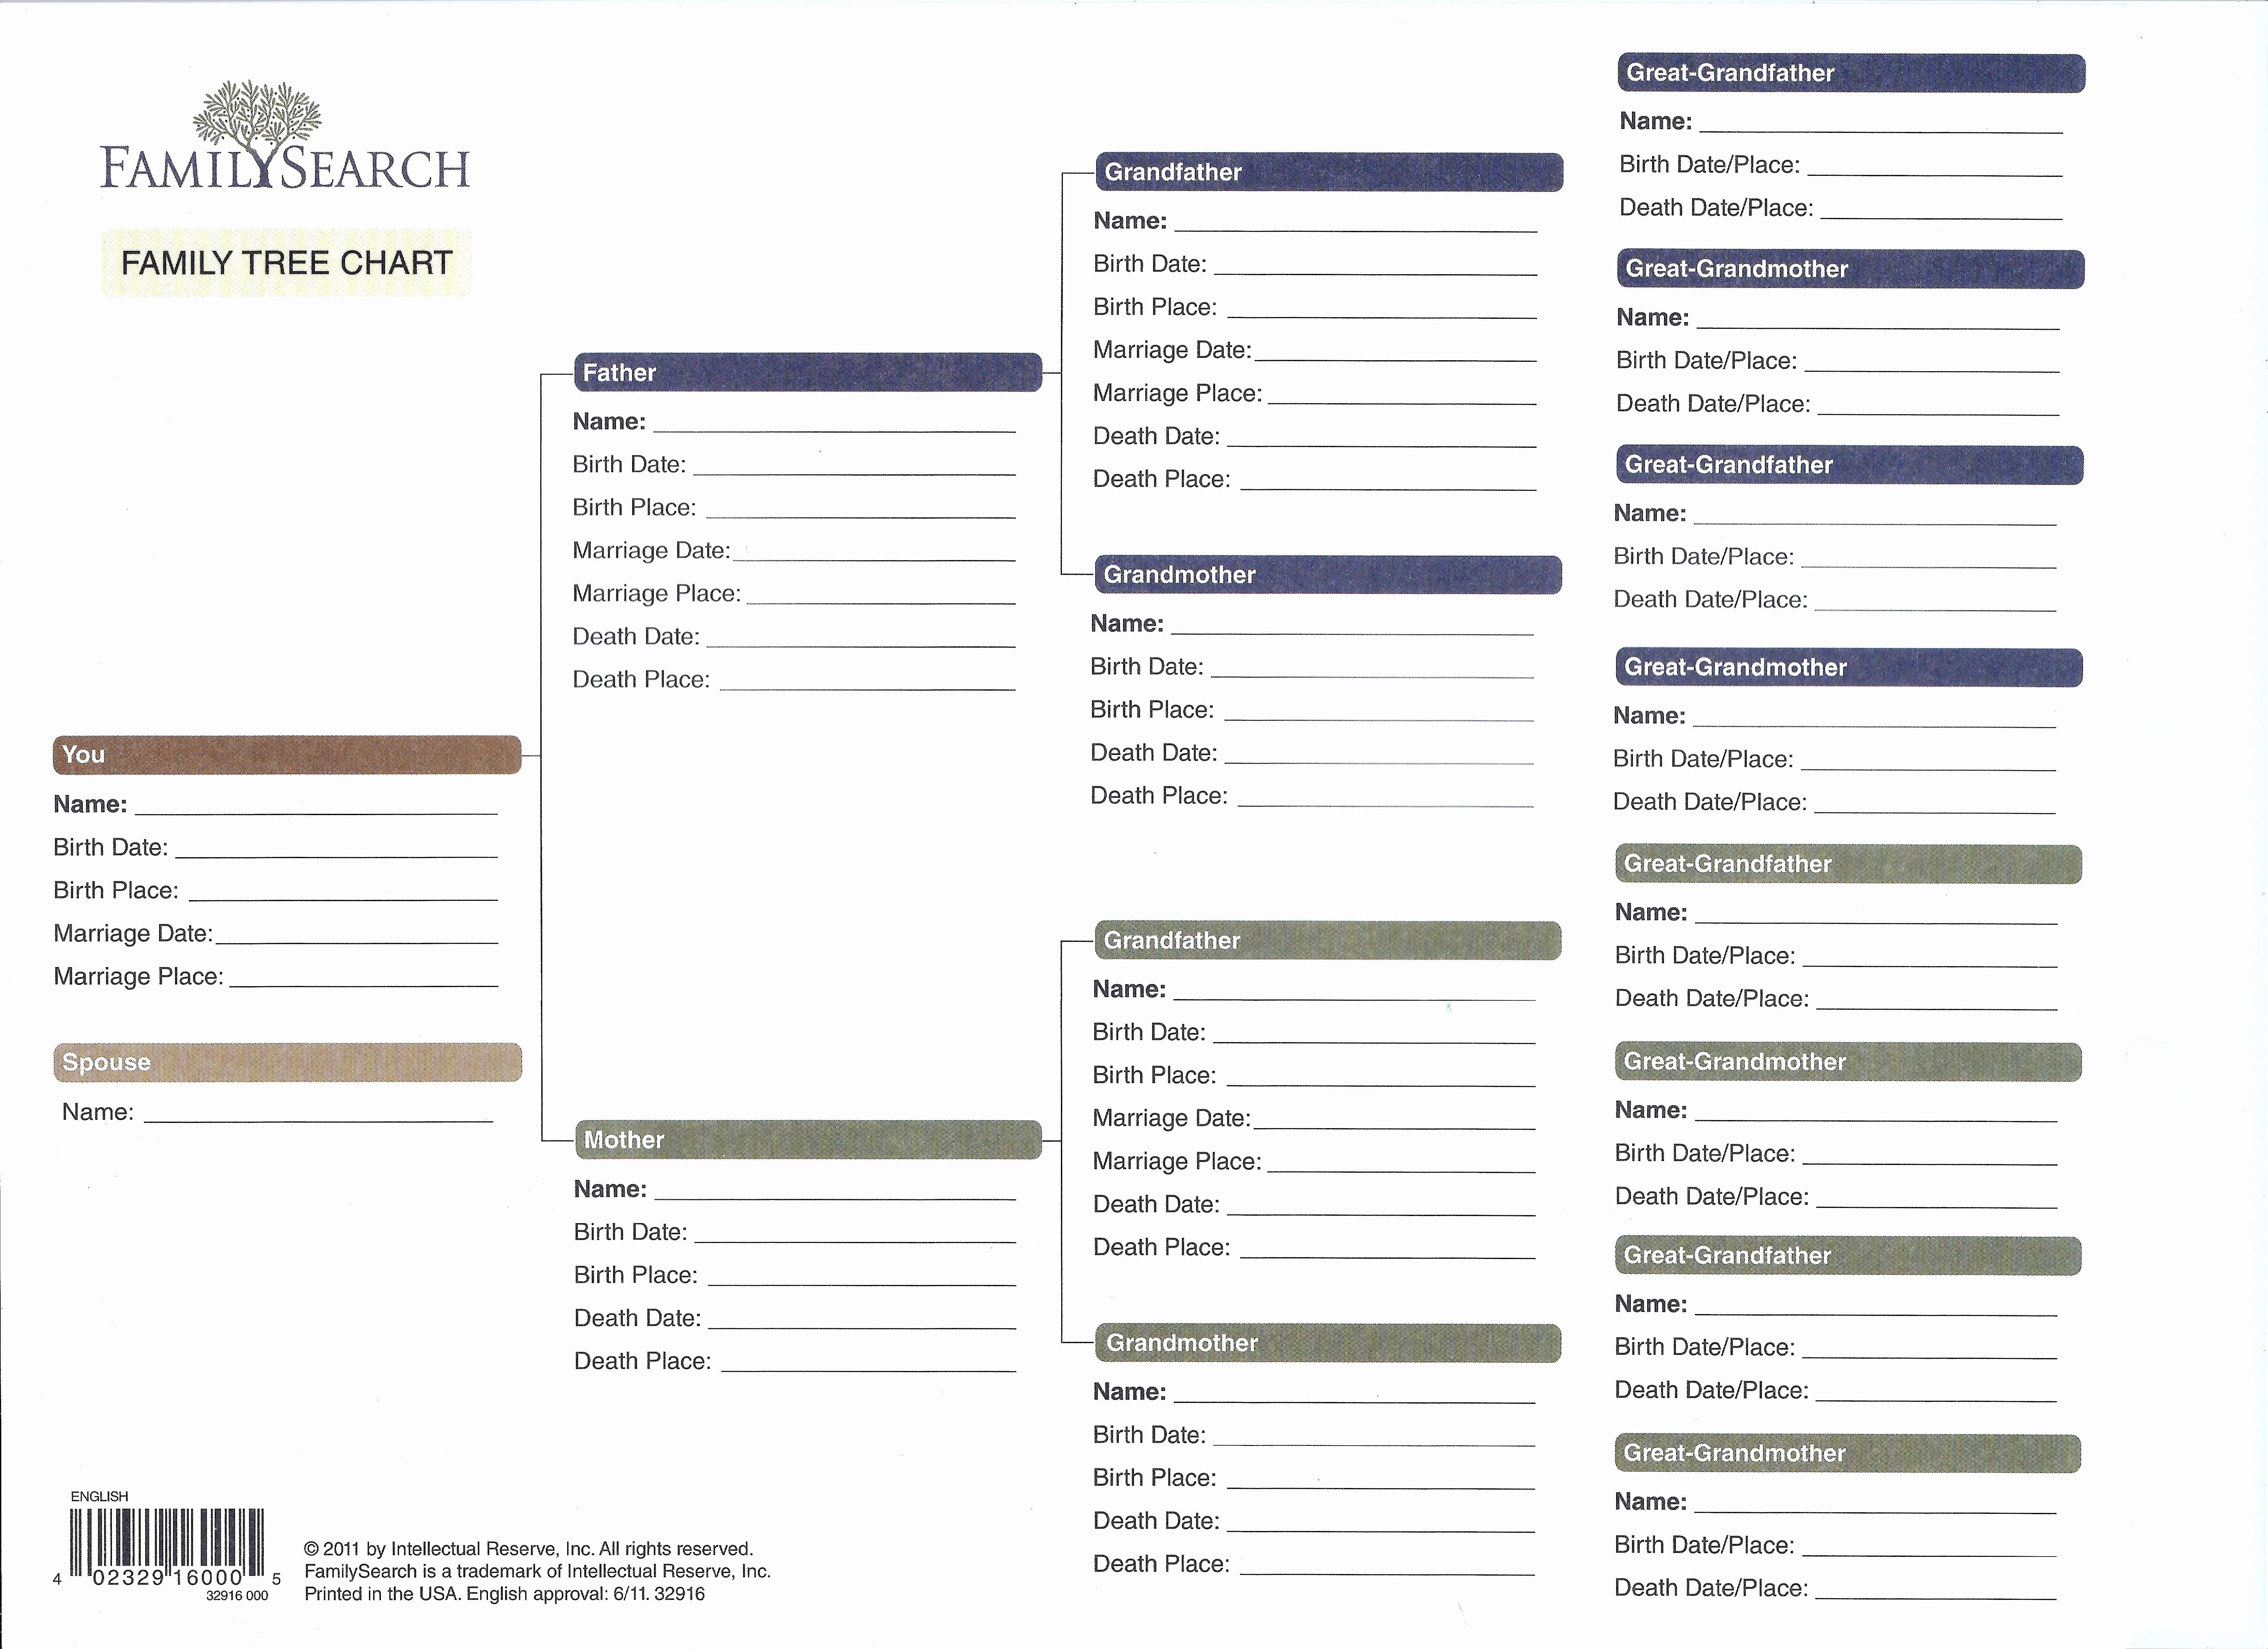 10 Generation Family Tree Template Excel High Class 12 13 Family